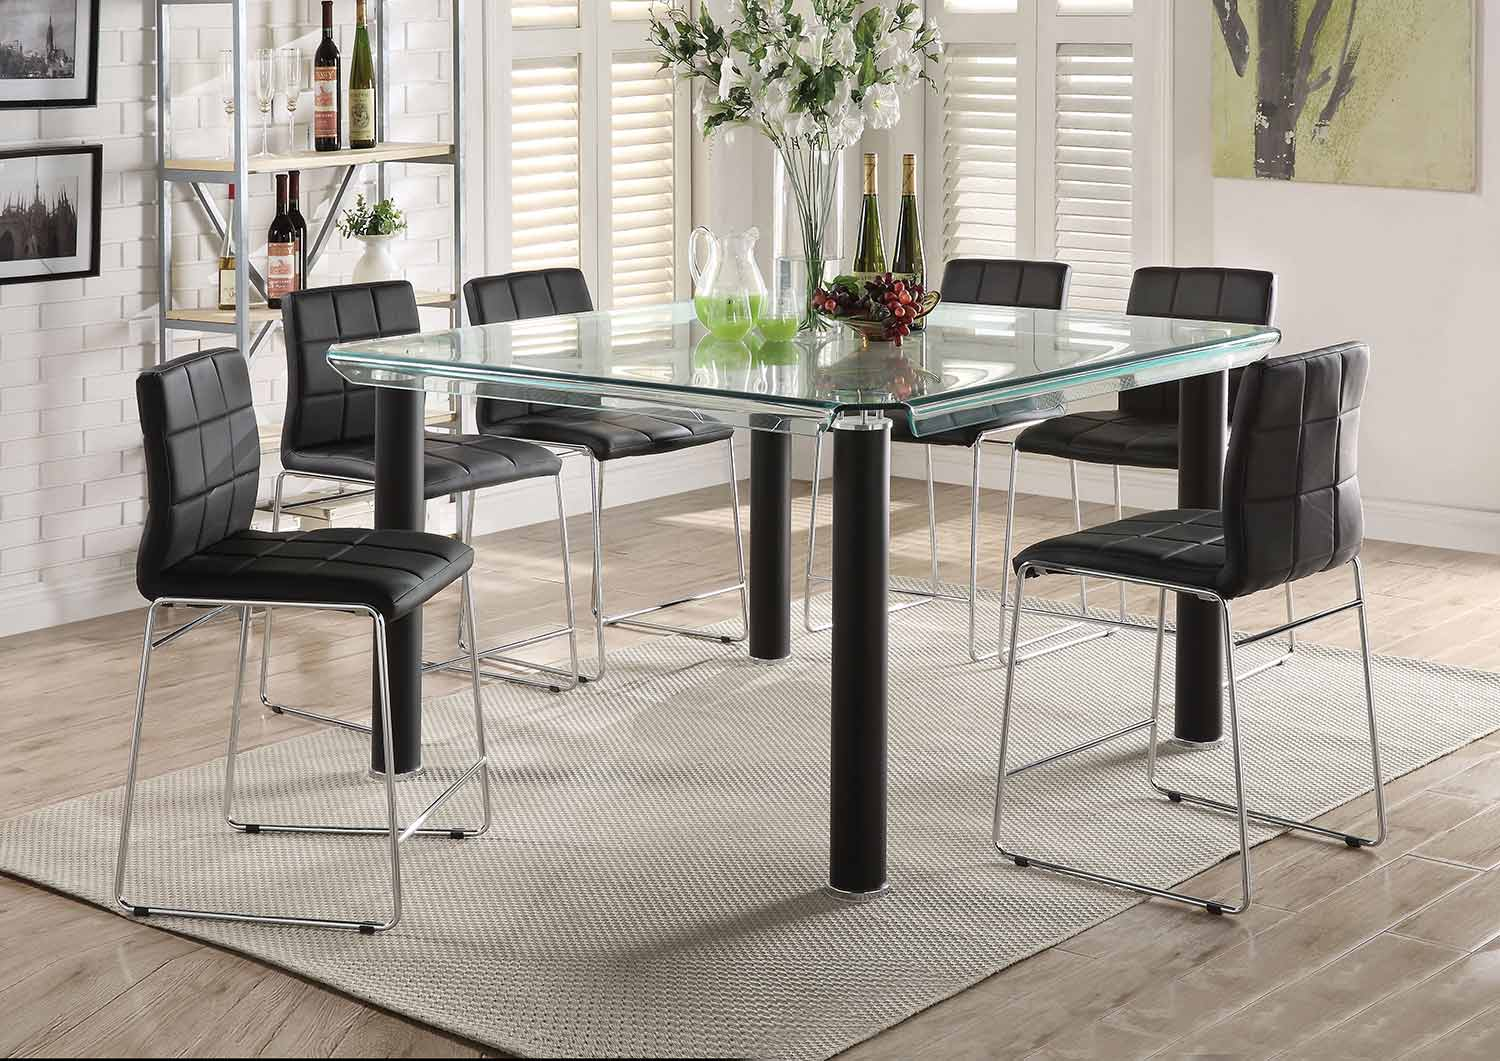 Acme Gordie Sled Metal Shape Counter Height Dining Set - Black/Clear Glass/Chrome